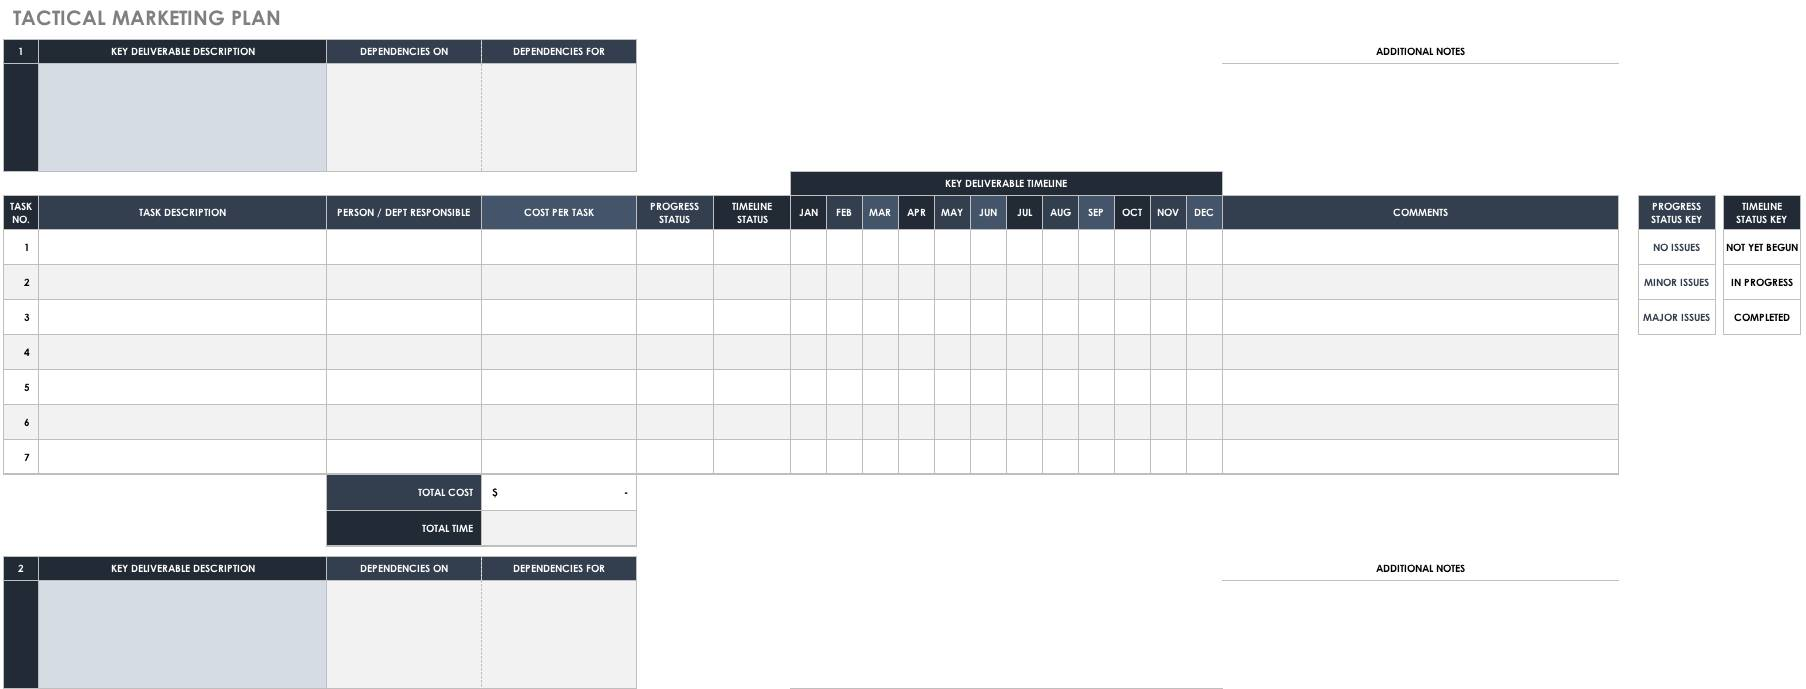 Marketing Tactical Plan Template Excel